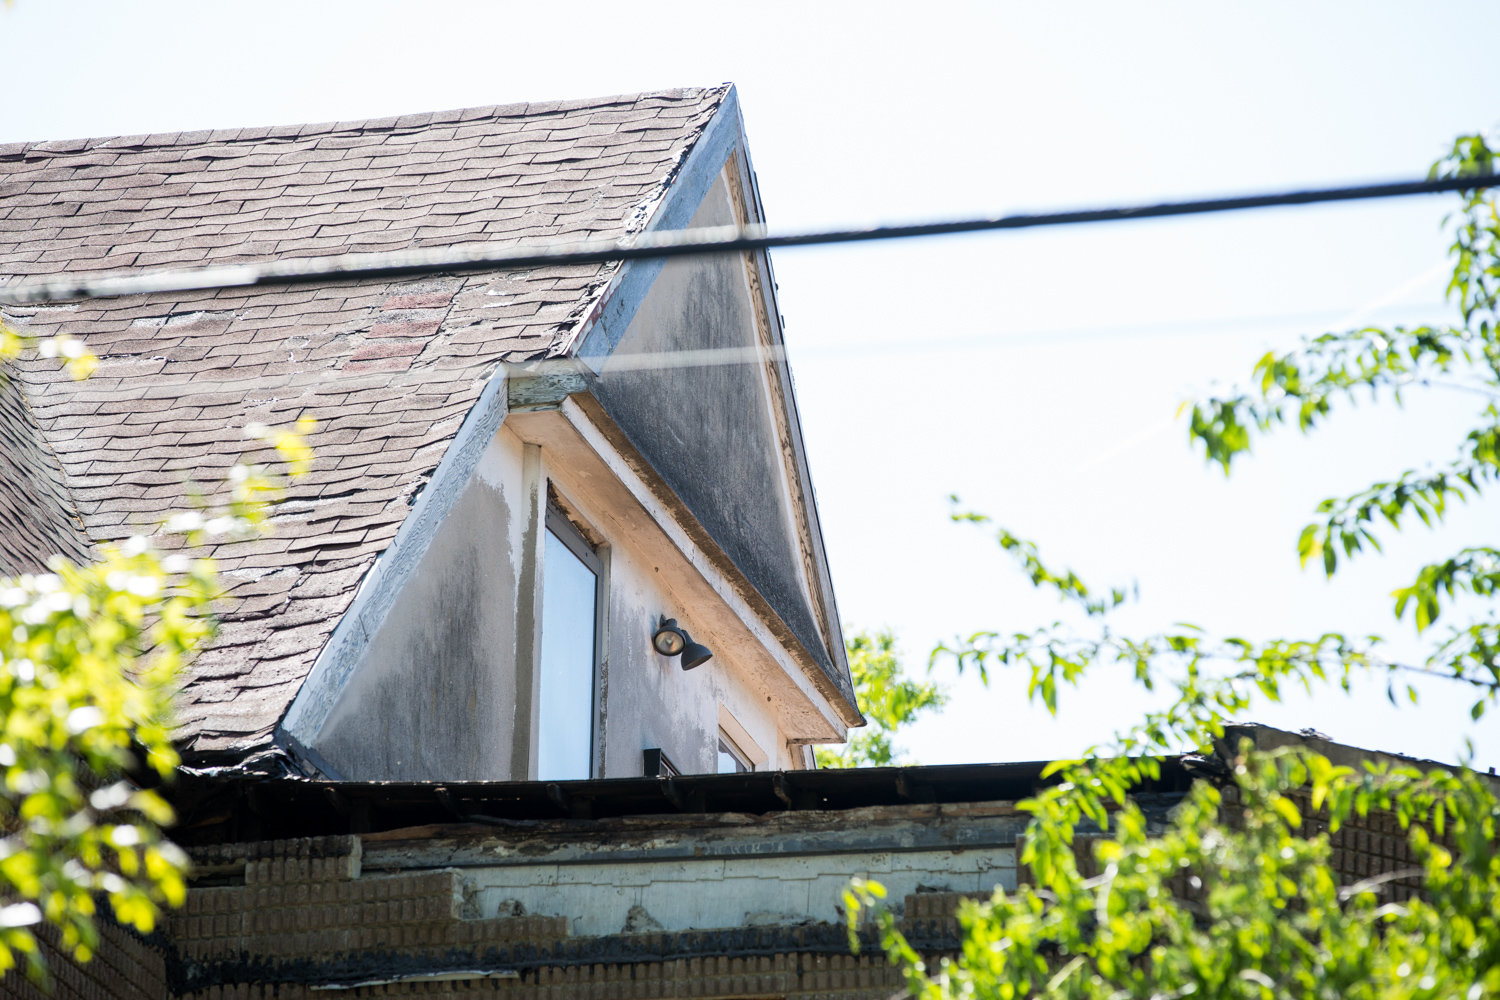 Just weeks after closing a deal to purchase the century-old home at 3377 Sedgwick Ave., new owner Anton Tinaj dealt with neighbor complaints about what they claimed was roof demolition in the middle of the coronavirus pandemic. Tinaj says it's simply a misunderstanding, and workers were just cleaning up the property.